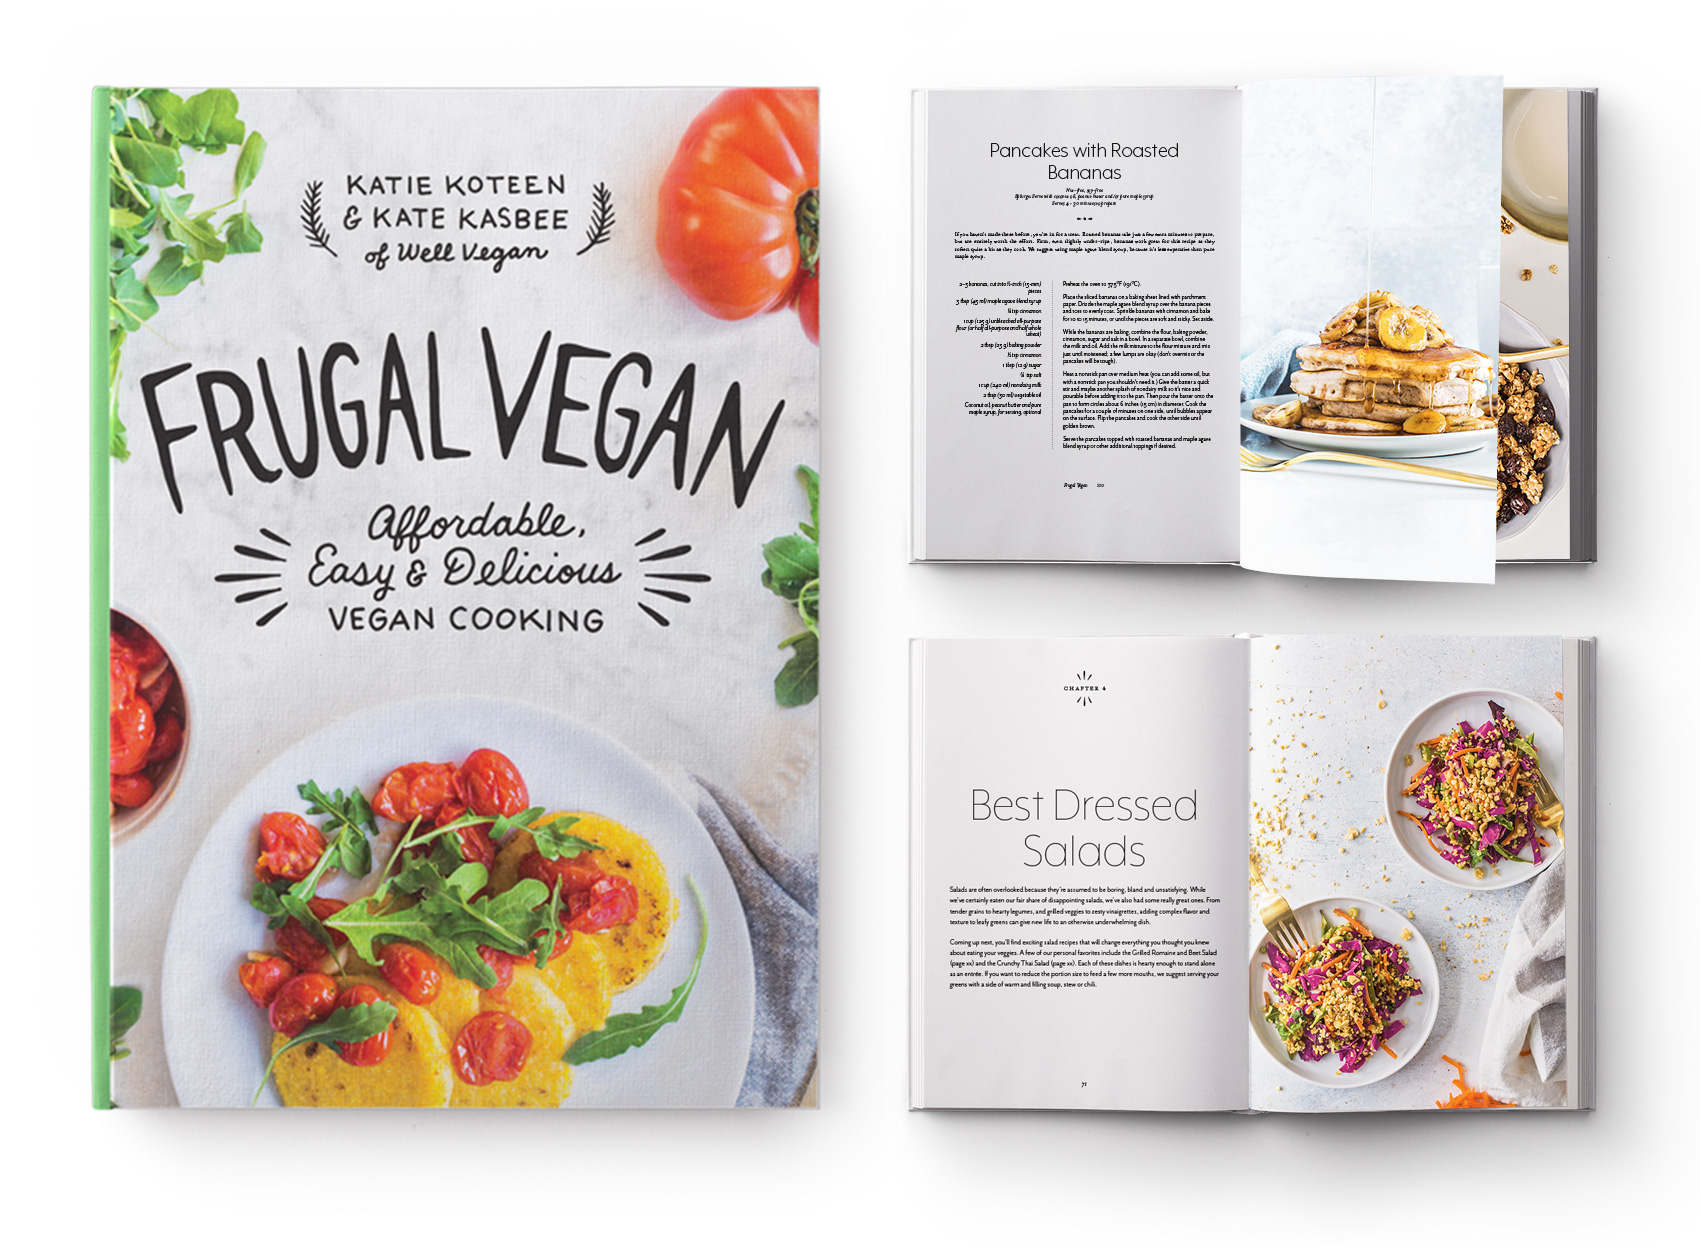 Well Vegan's cookbook Frugal Vegan, an affordable, easy and delicious guide to vegan cooking by Katie Koteen and Kate Kasbee.